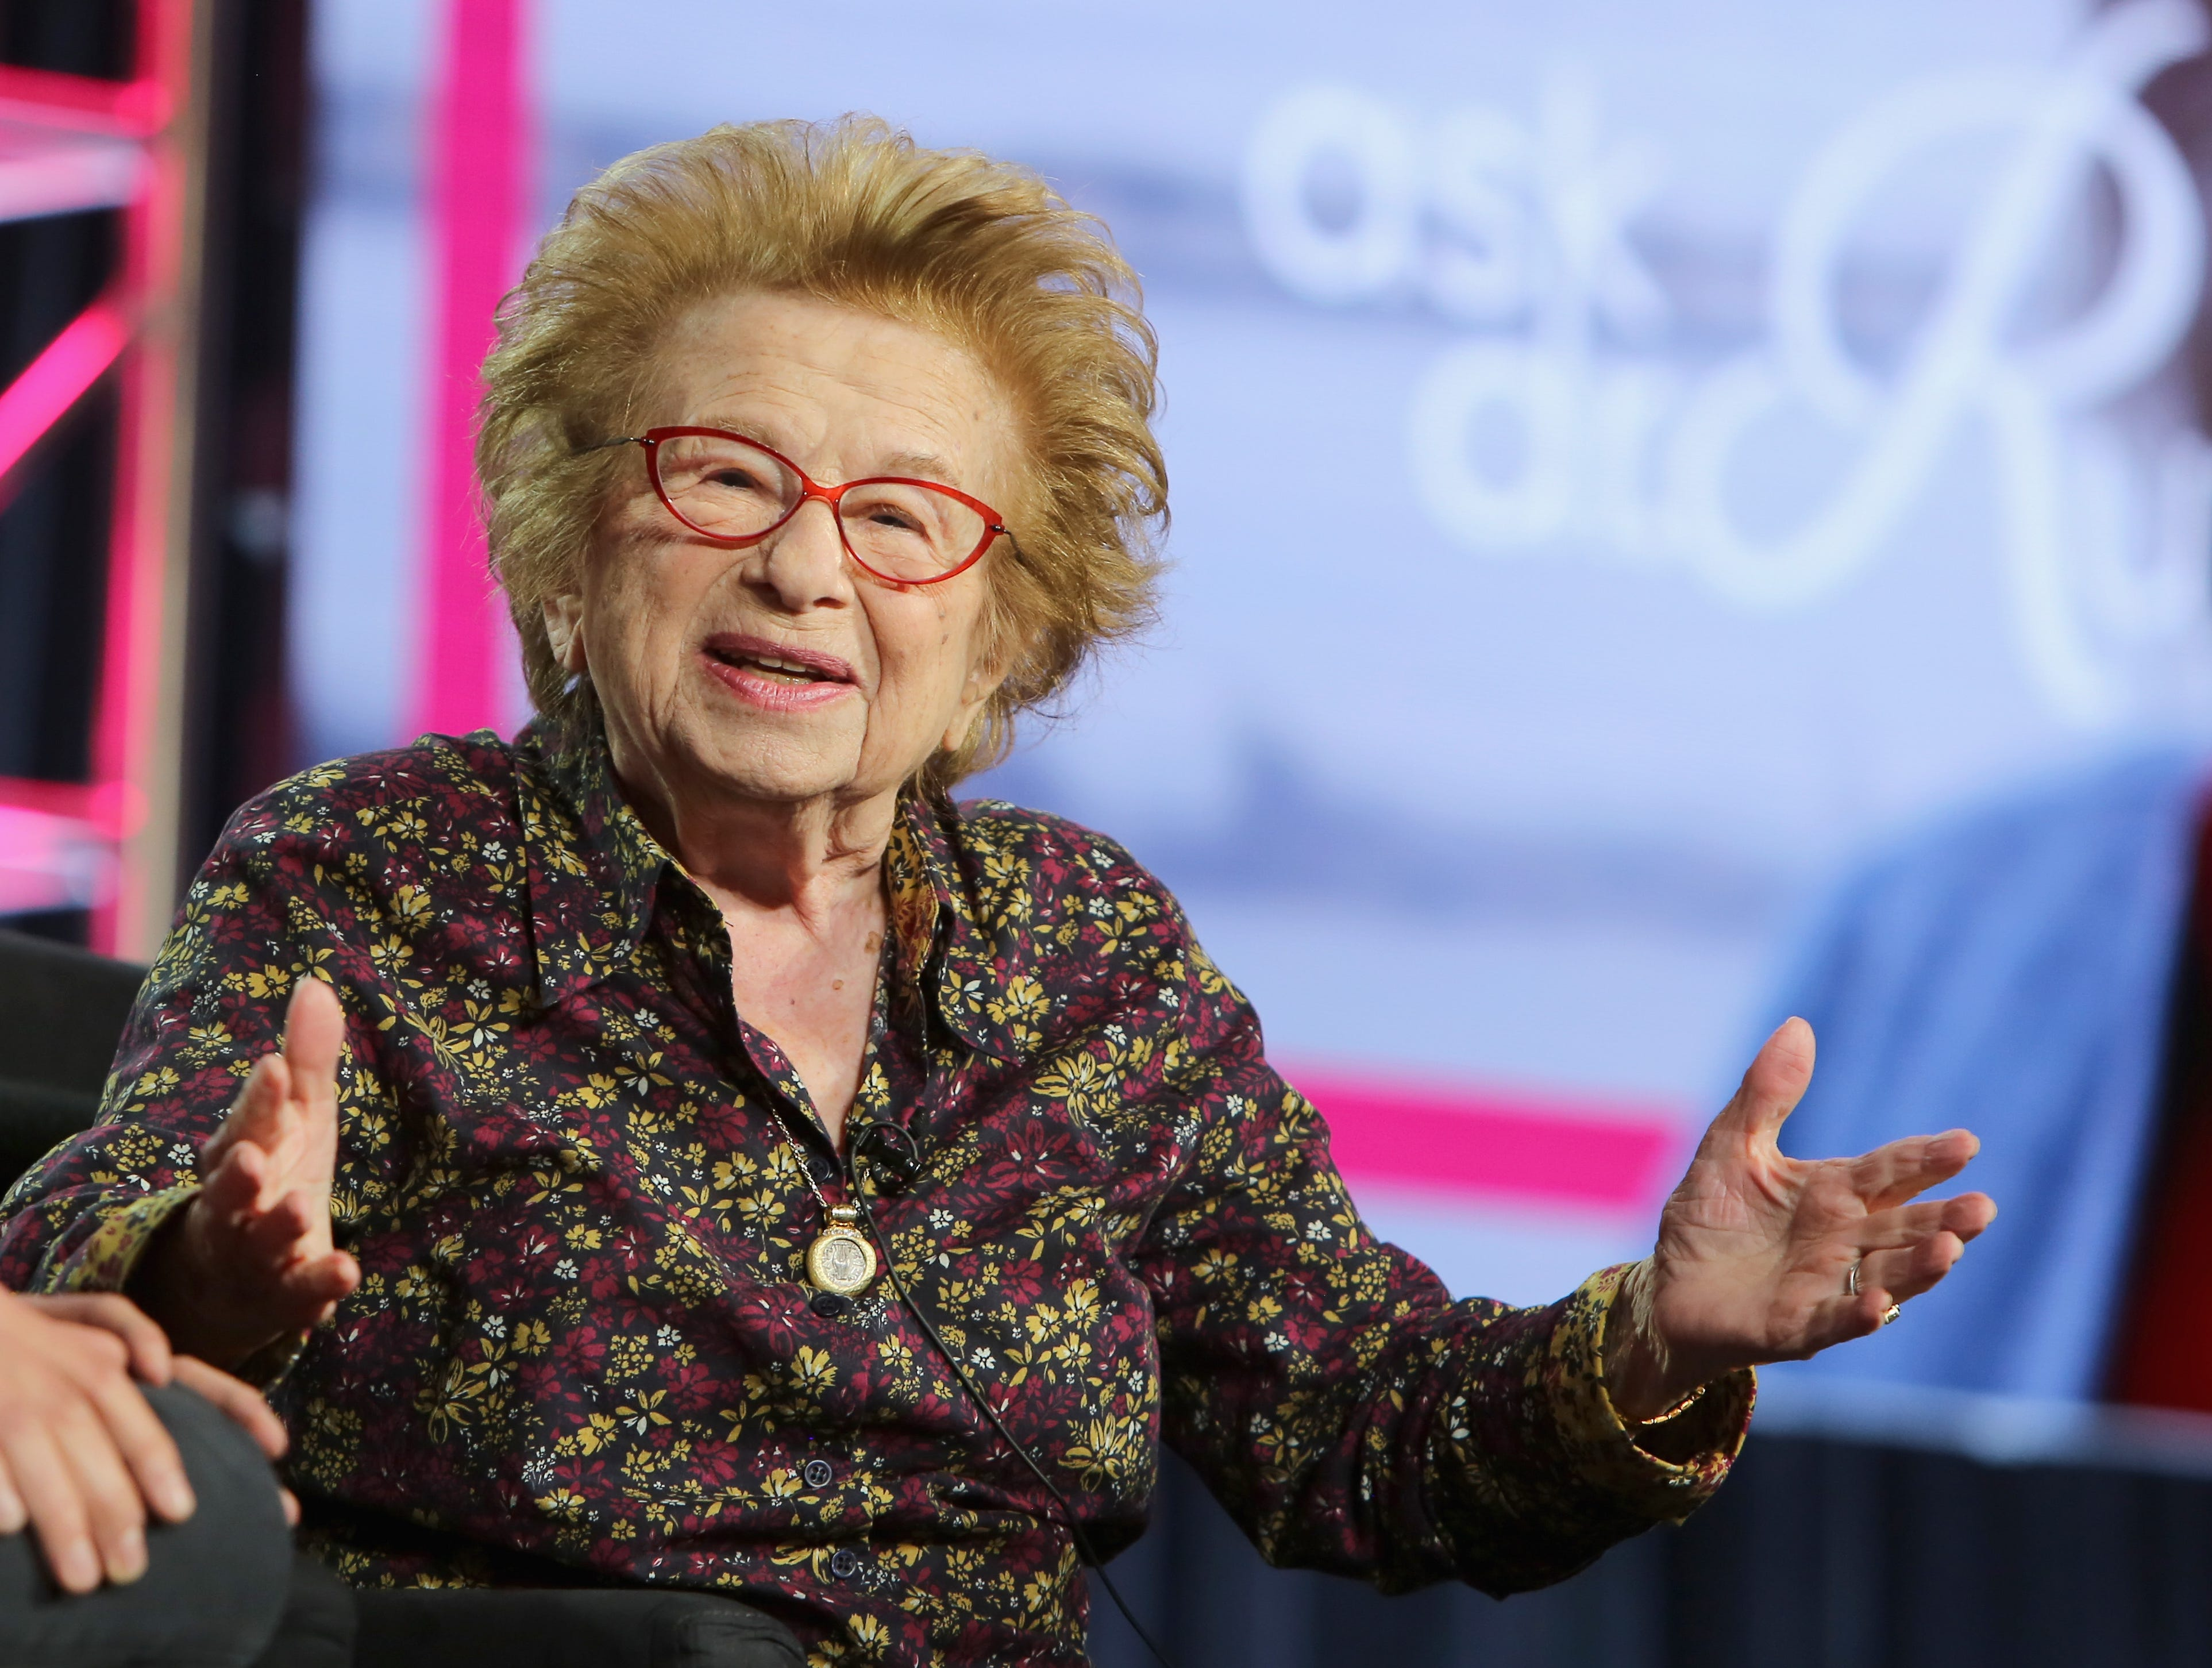 """Dr. Ruth Westheimer discusses her new show """"Ask Dr. Ruth"""" on Hulu."""